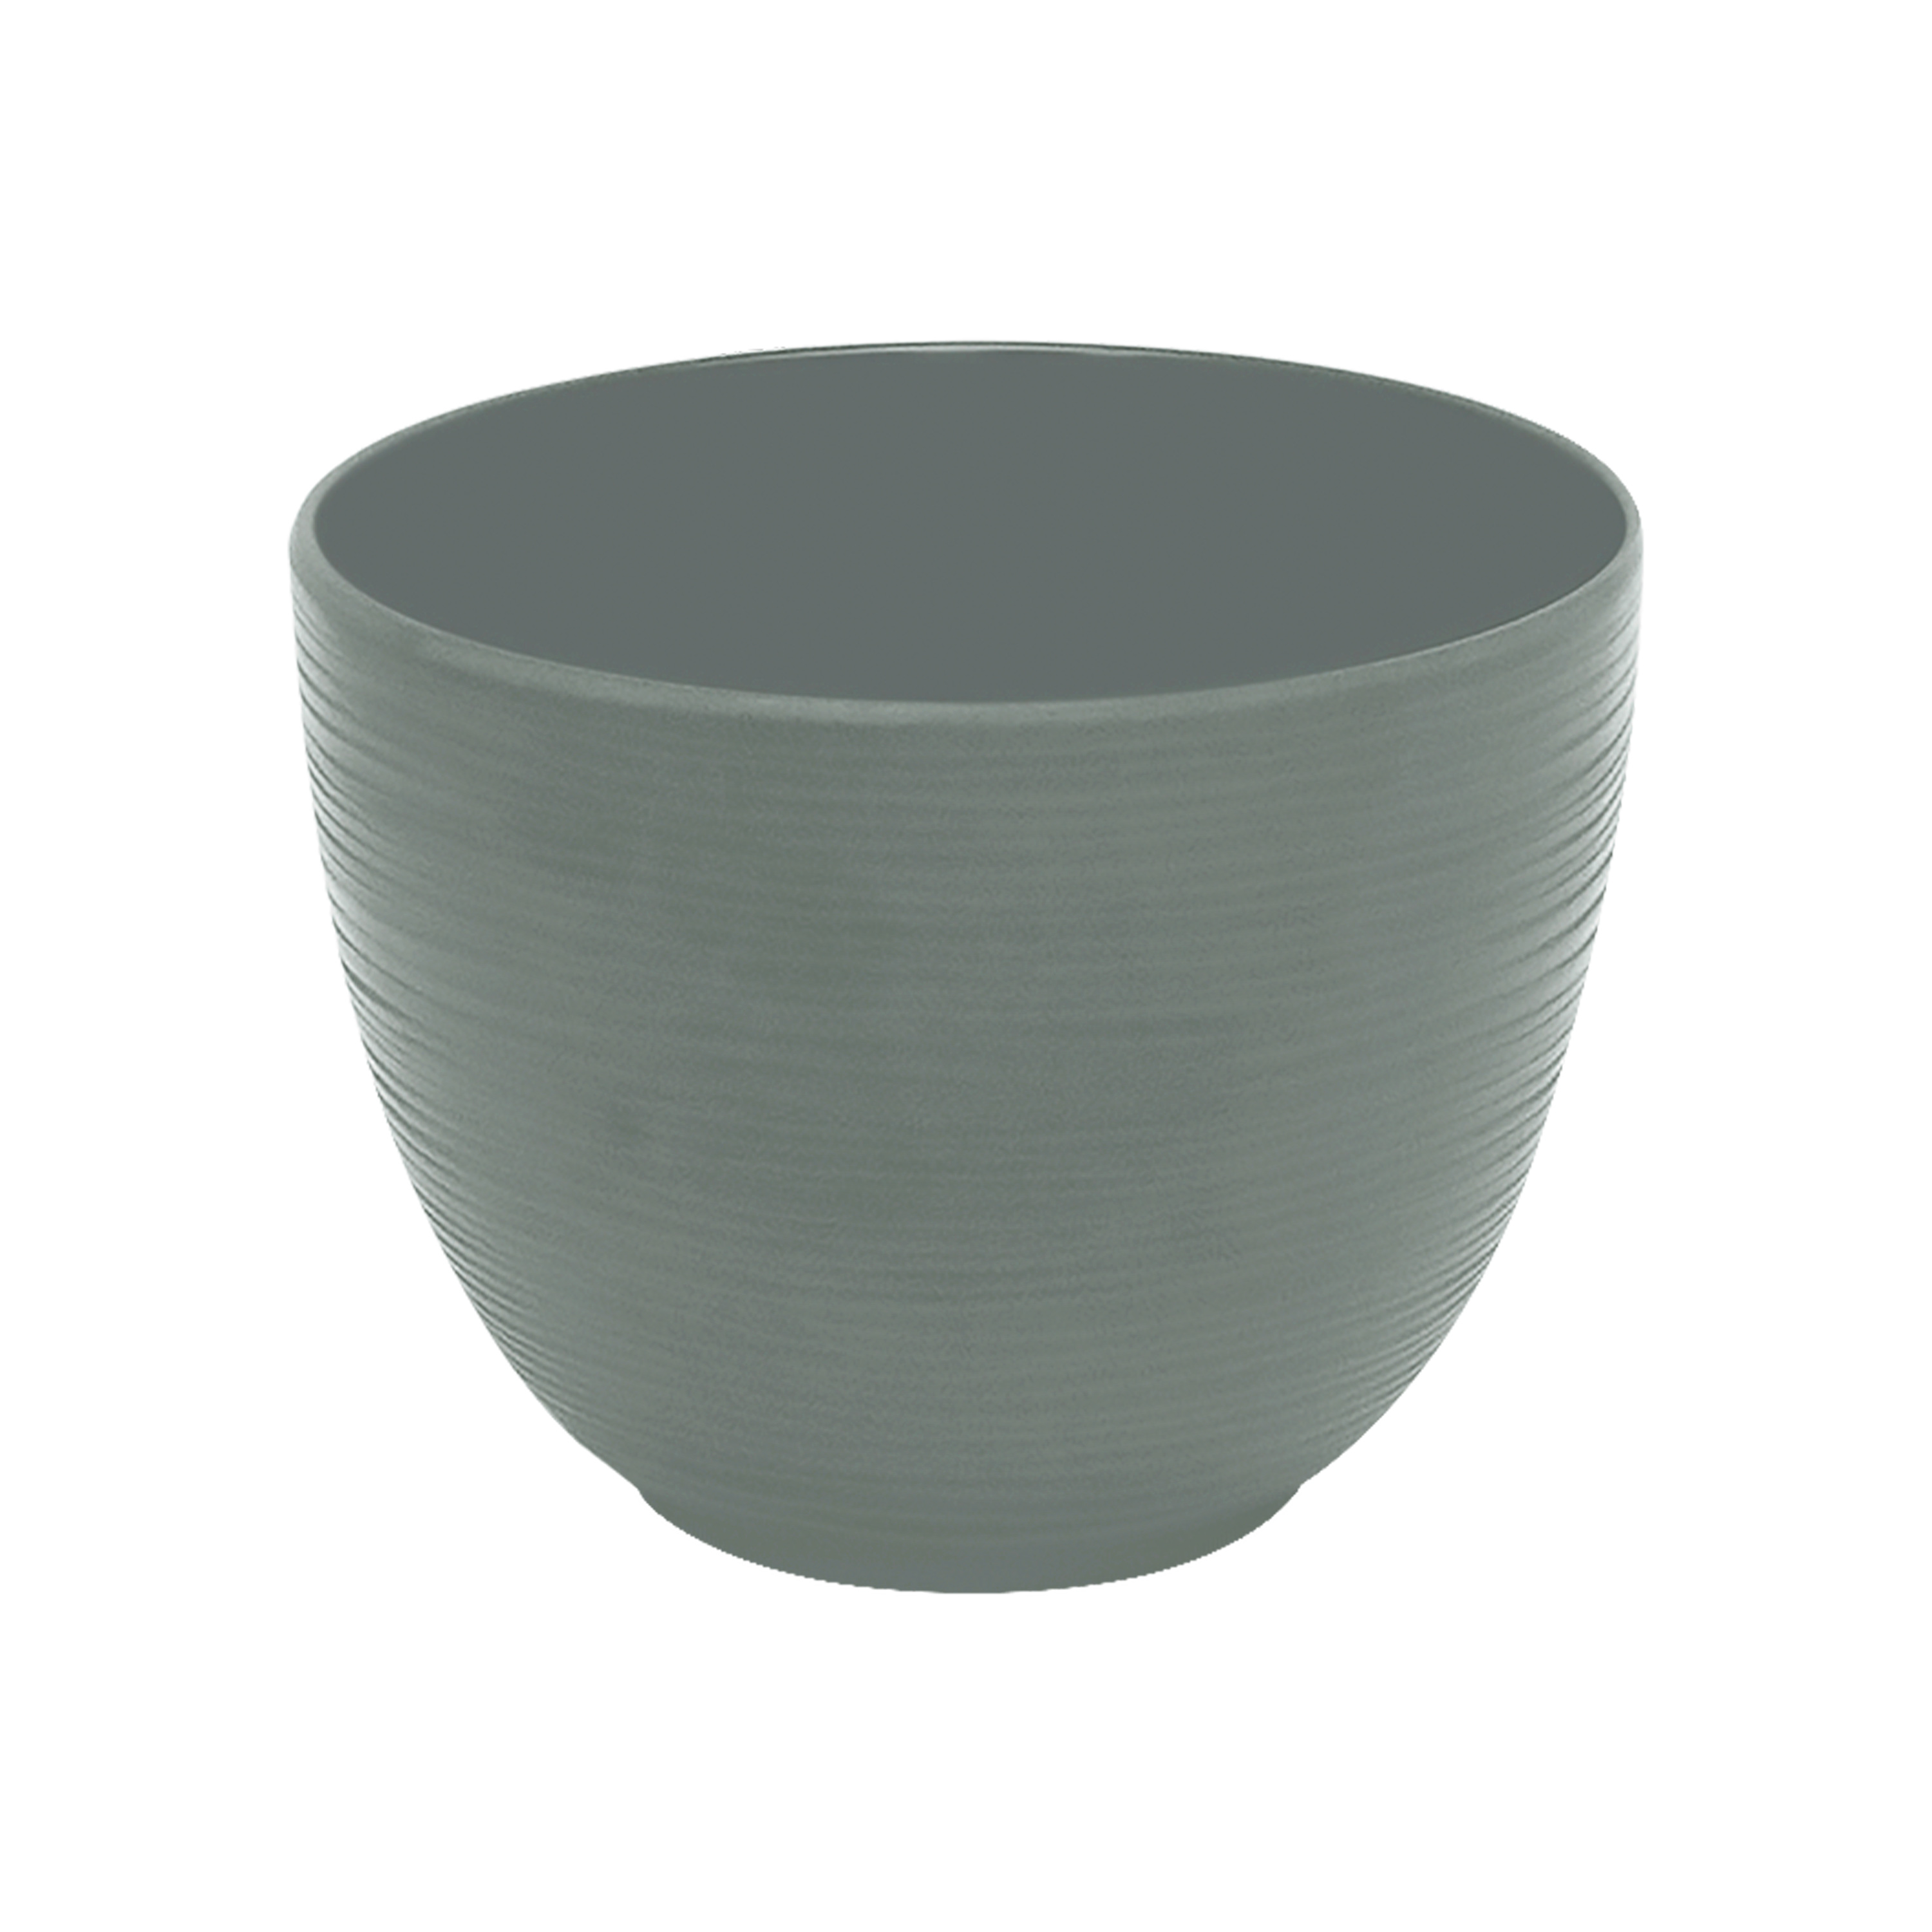 Zak Style Serving and Dip Bowls, Assorted Colors, 4-piece set slideshow image 7